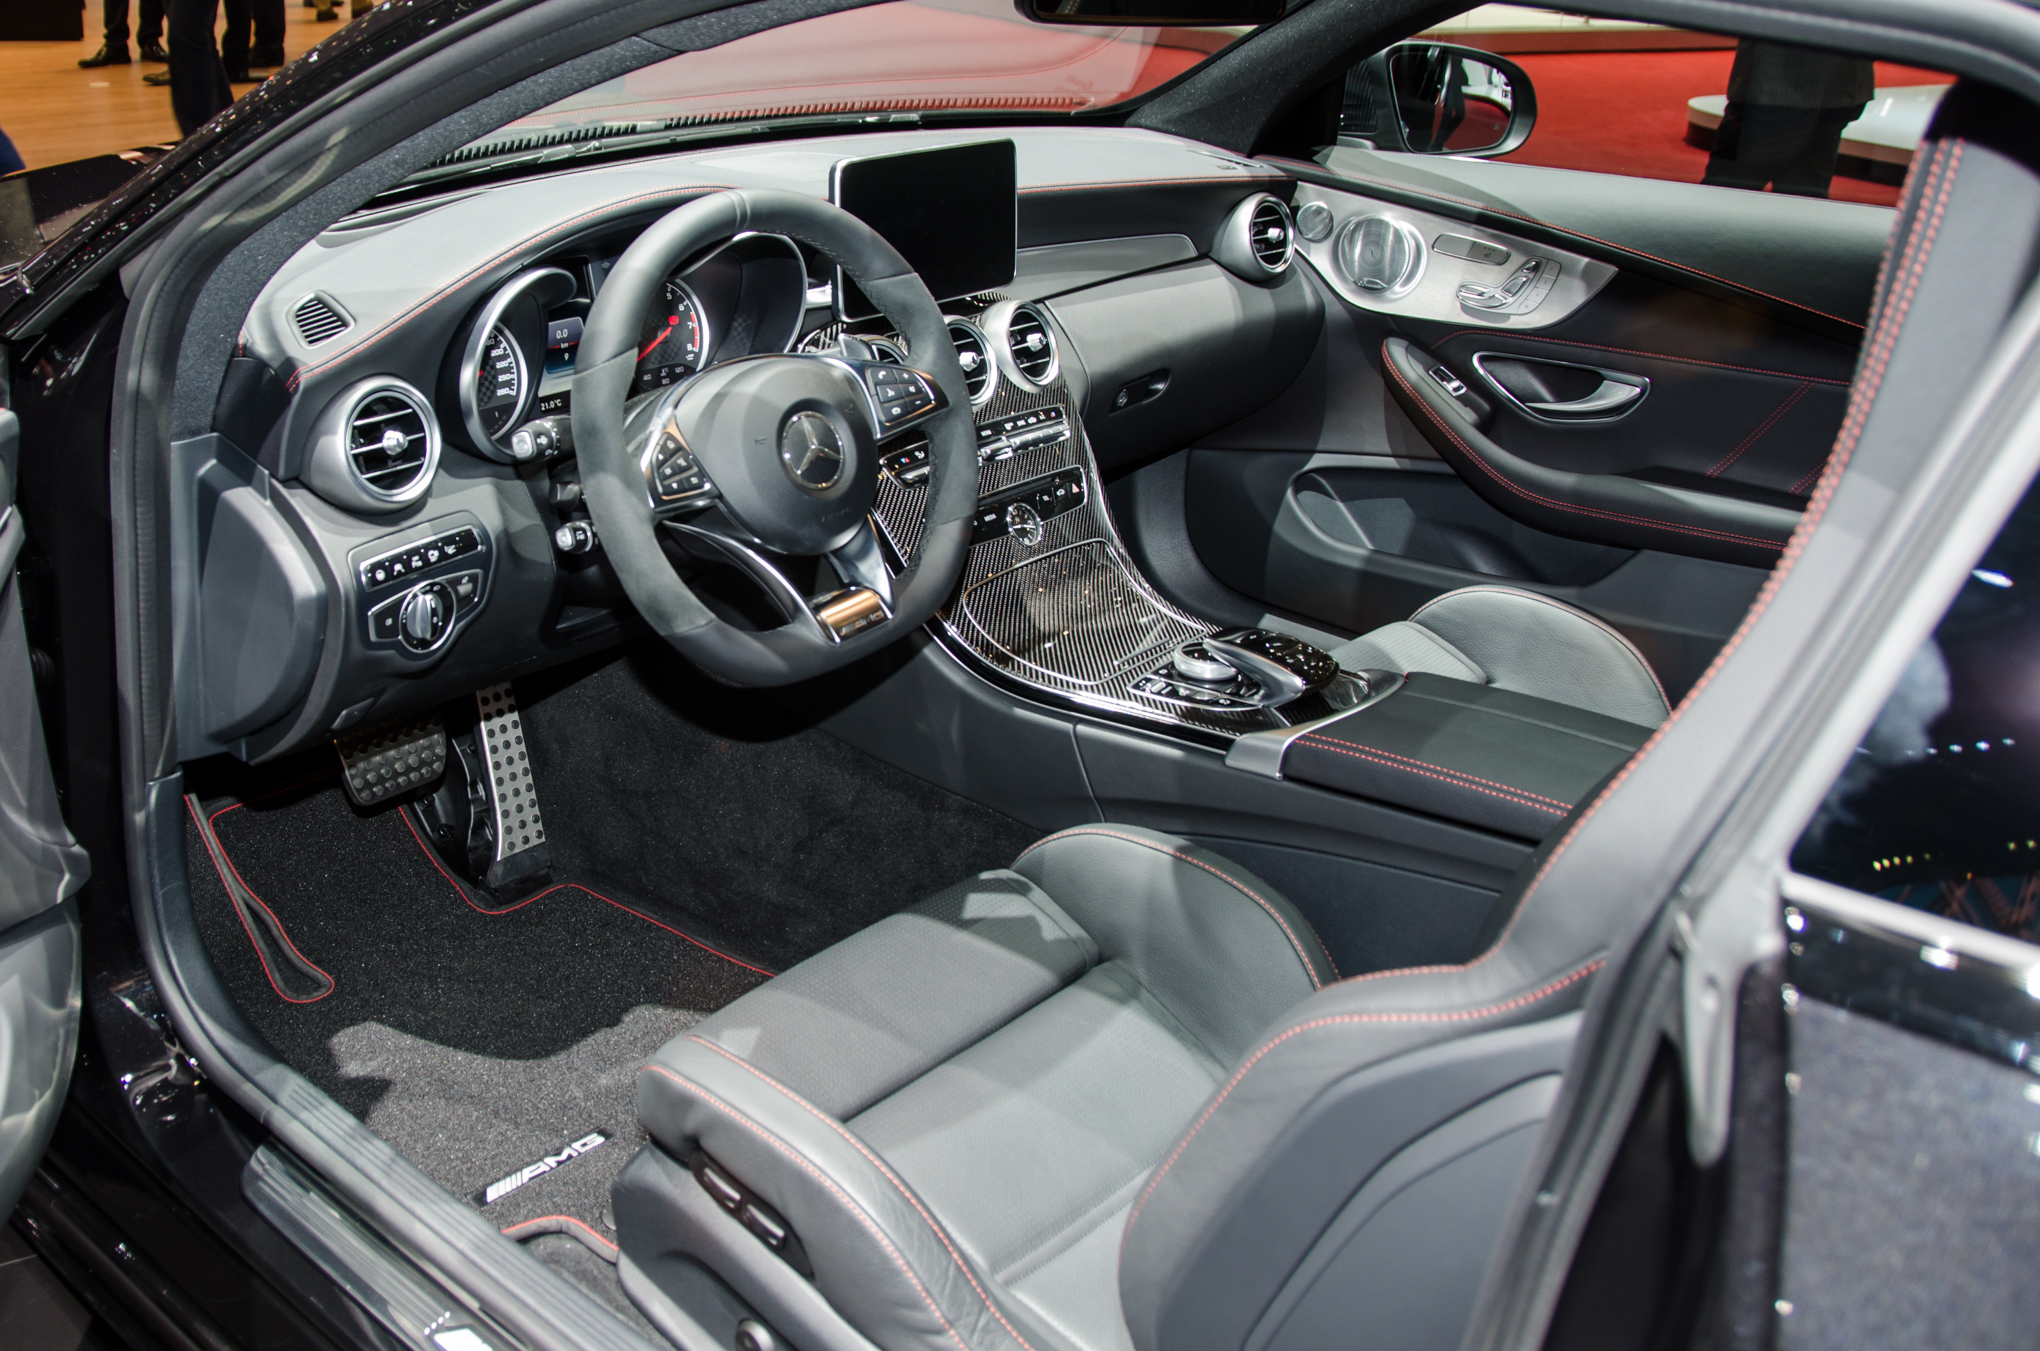 http://st.automobilemag.com/uploads/sites/11/2016/03/2017-Mercedes-AMG-C43-coupe-interior.jpg?interpolation=lanczos-none&fit=inside%7C1357%3A773&crop=1357%3A773%3B%2A%2C%2A